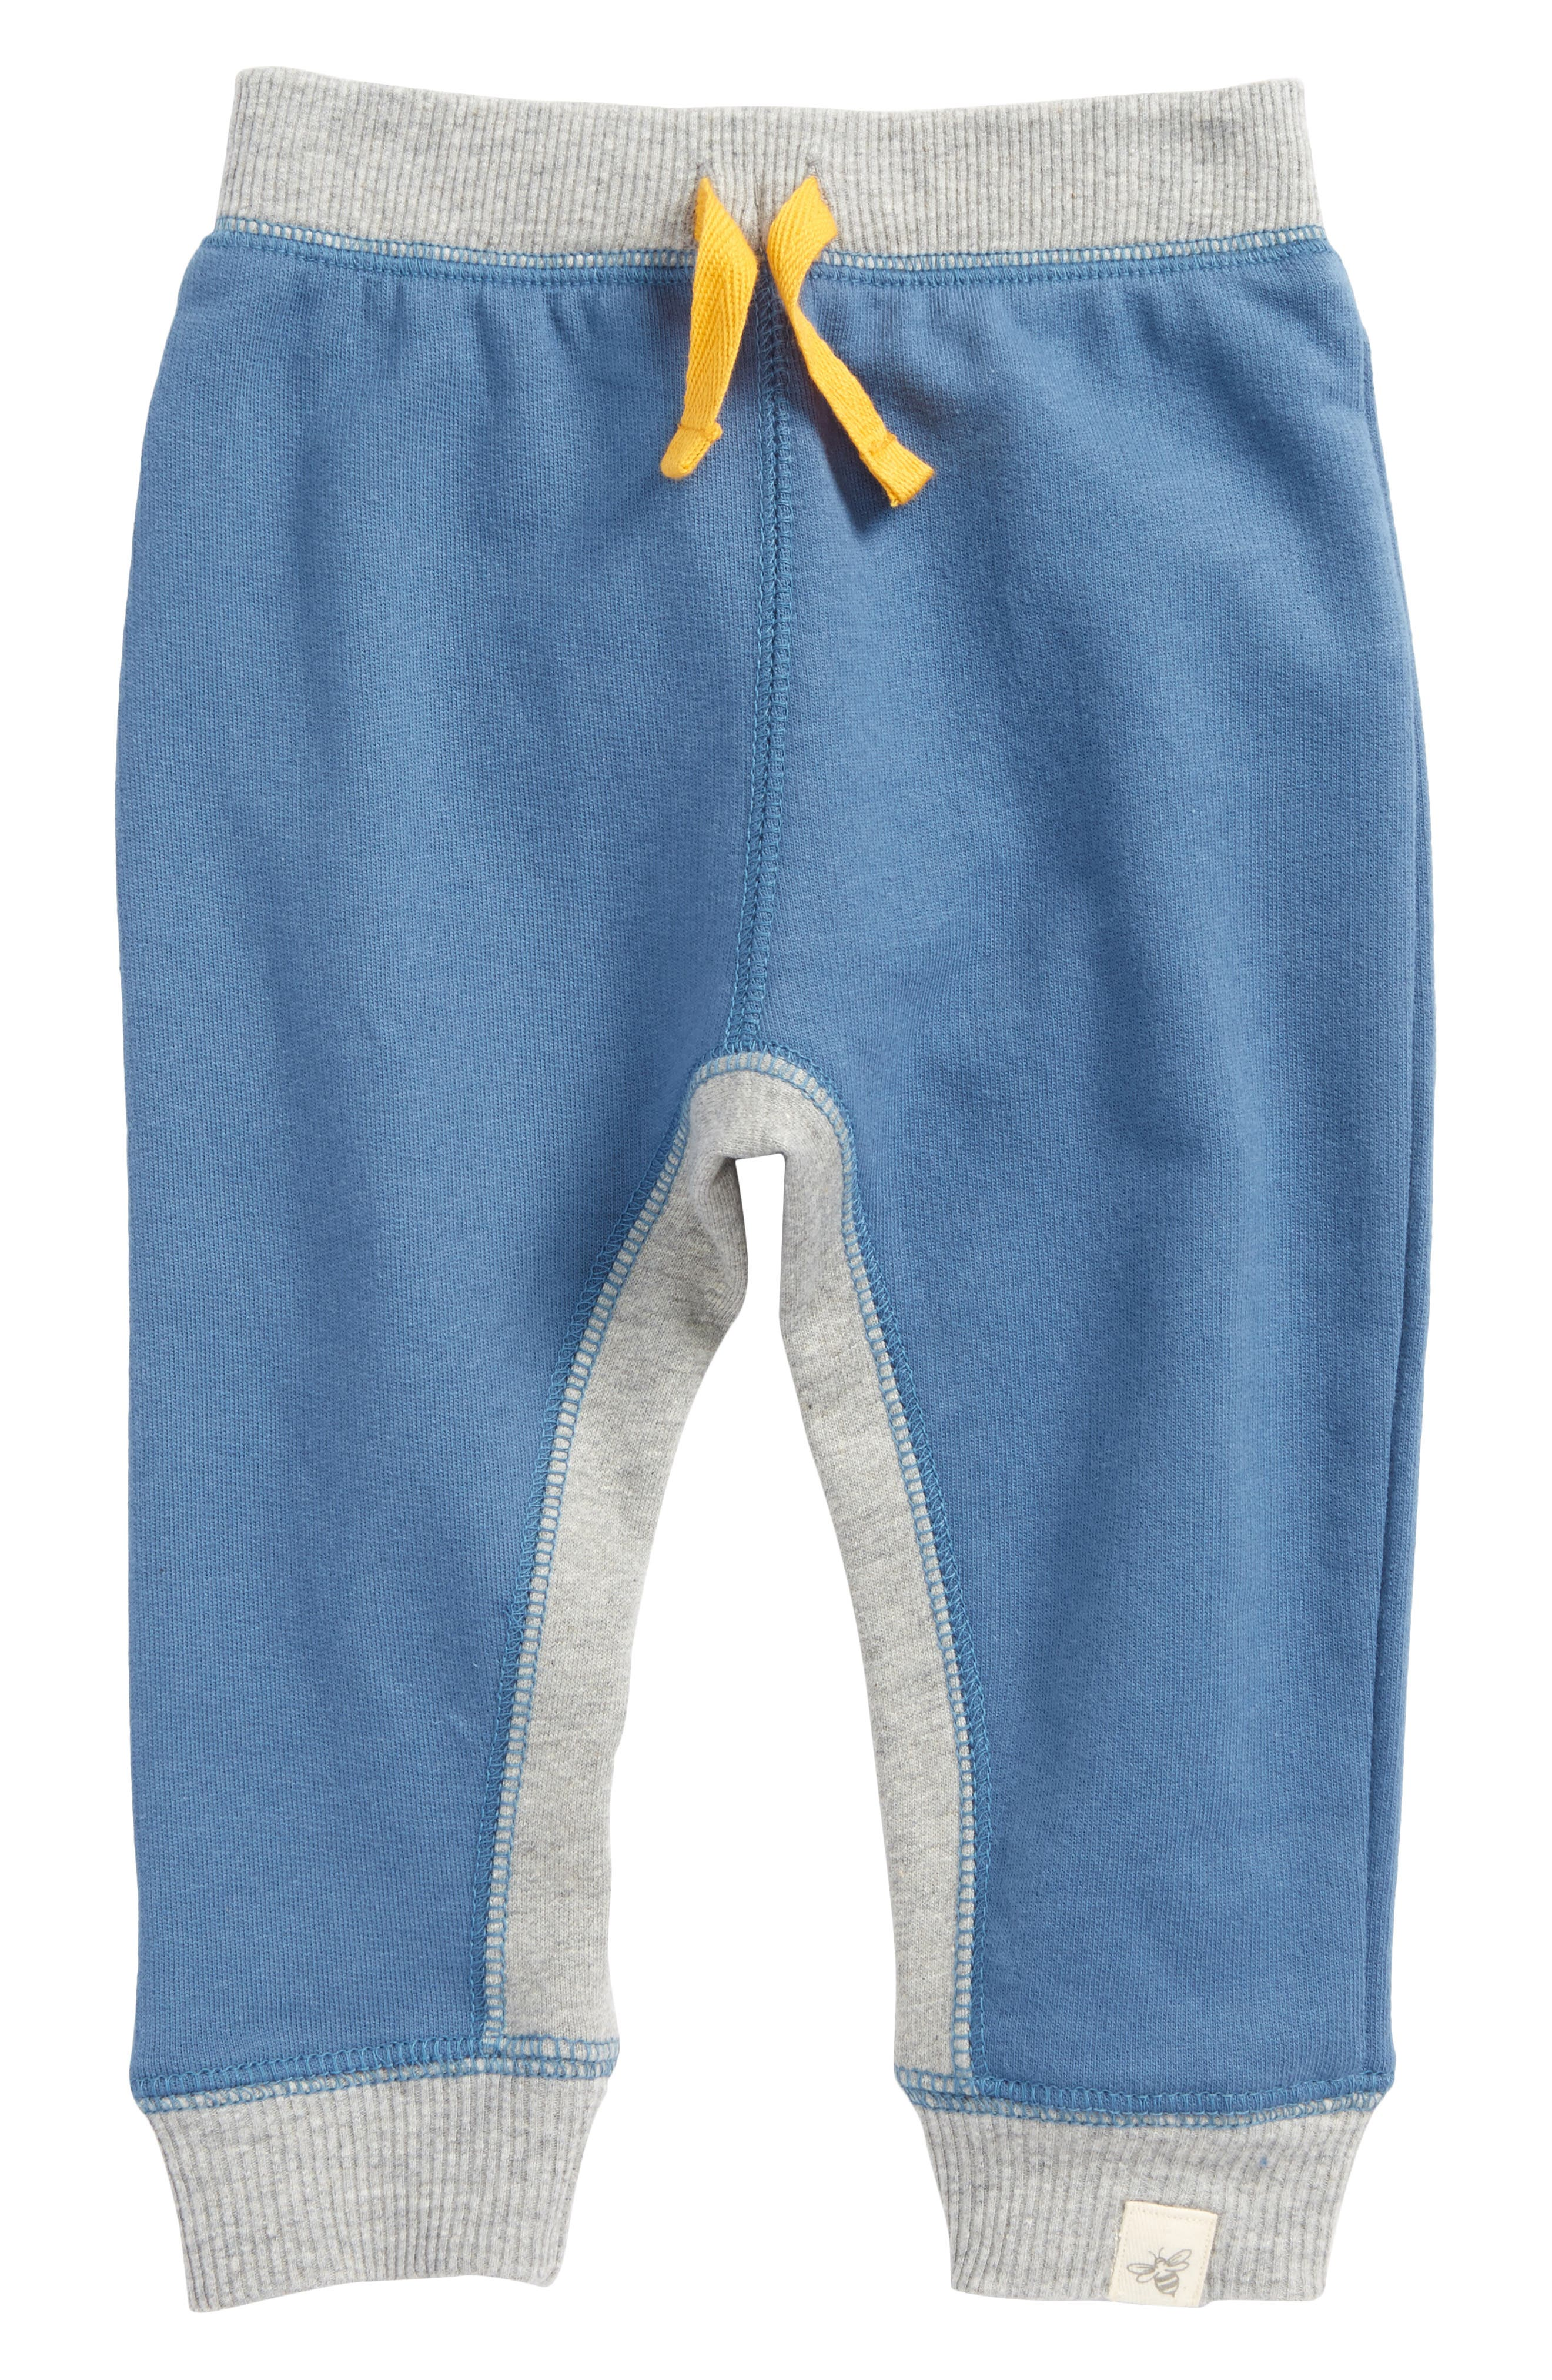 Organic Cotton French Terry Pants,                             Main thumbnail 1, color,                             430